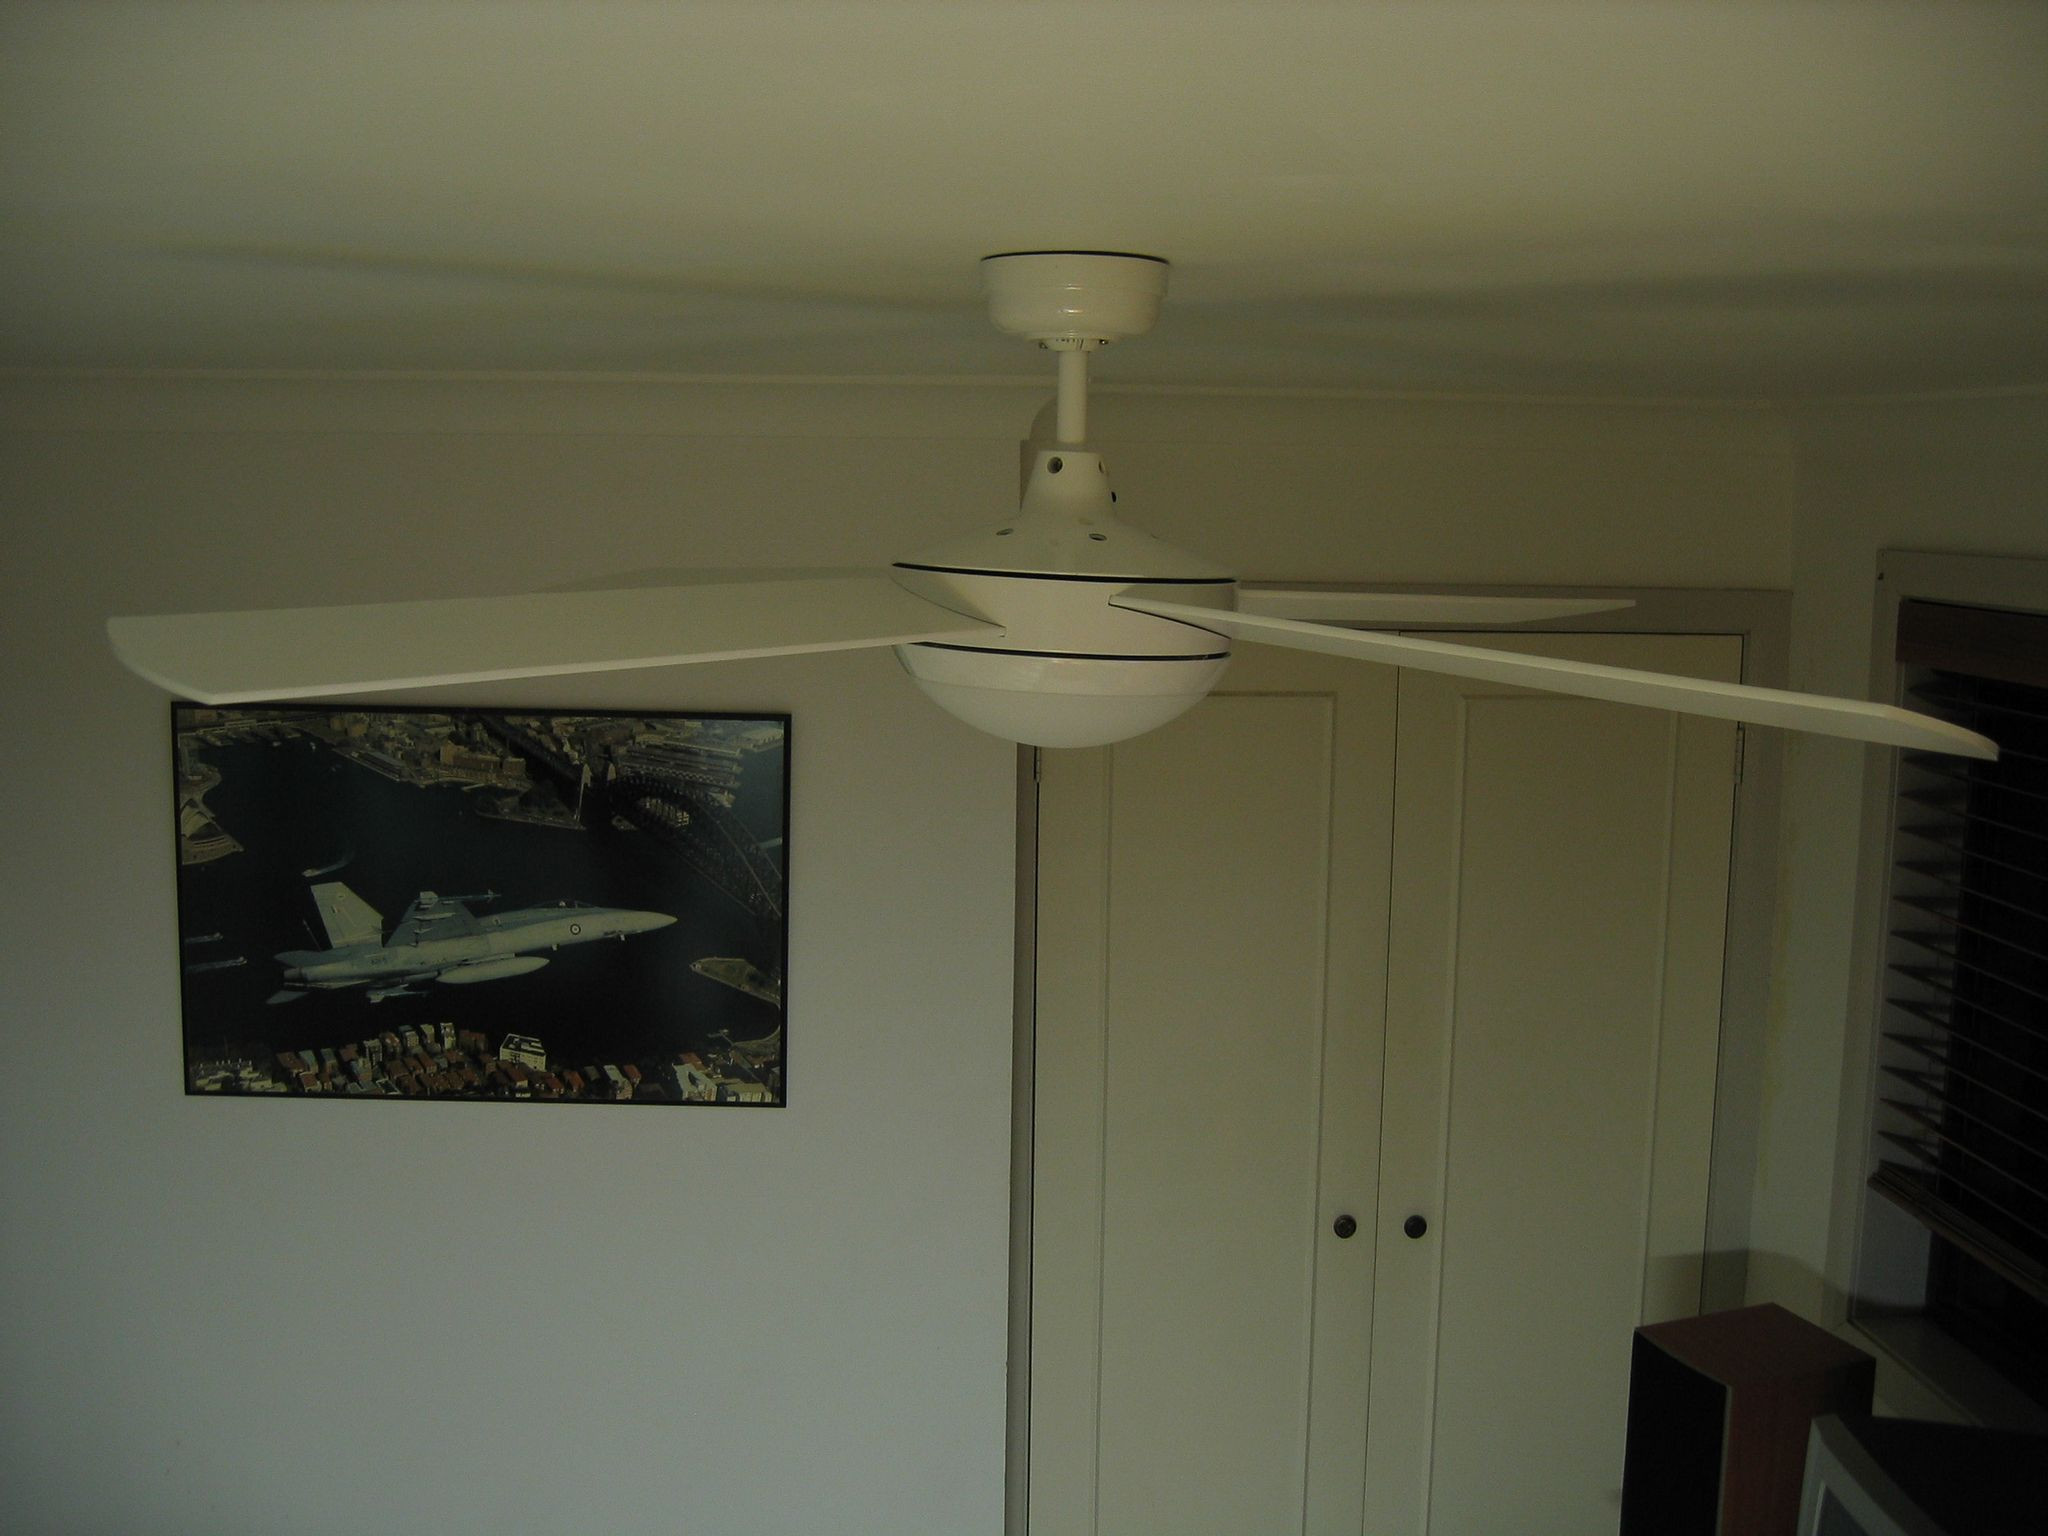 A photo taken from high up towards the ceiling looking directly across towards a ceiling fan. Past the fan is a pair of cupboard doors, and a poster on the wall of an F/A-18 Hornet jet fighter flying over the Sydney Harbour Bridge.